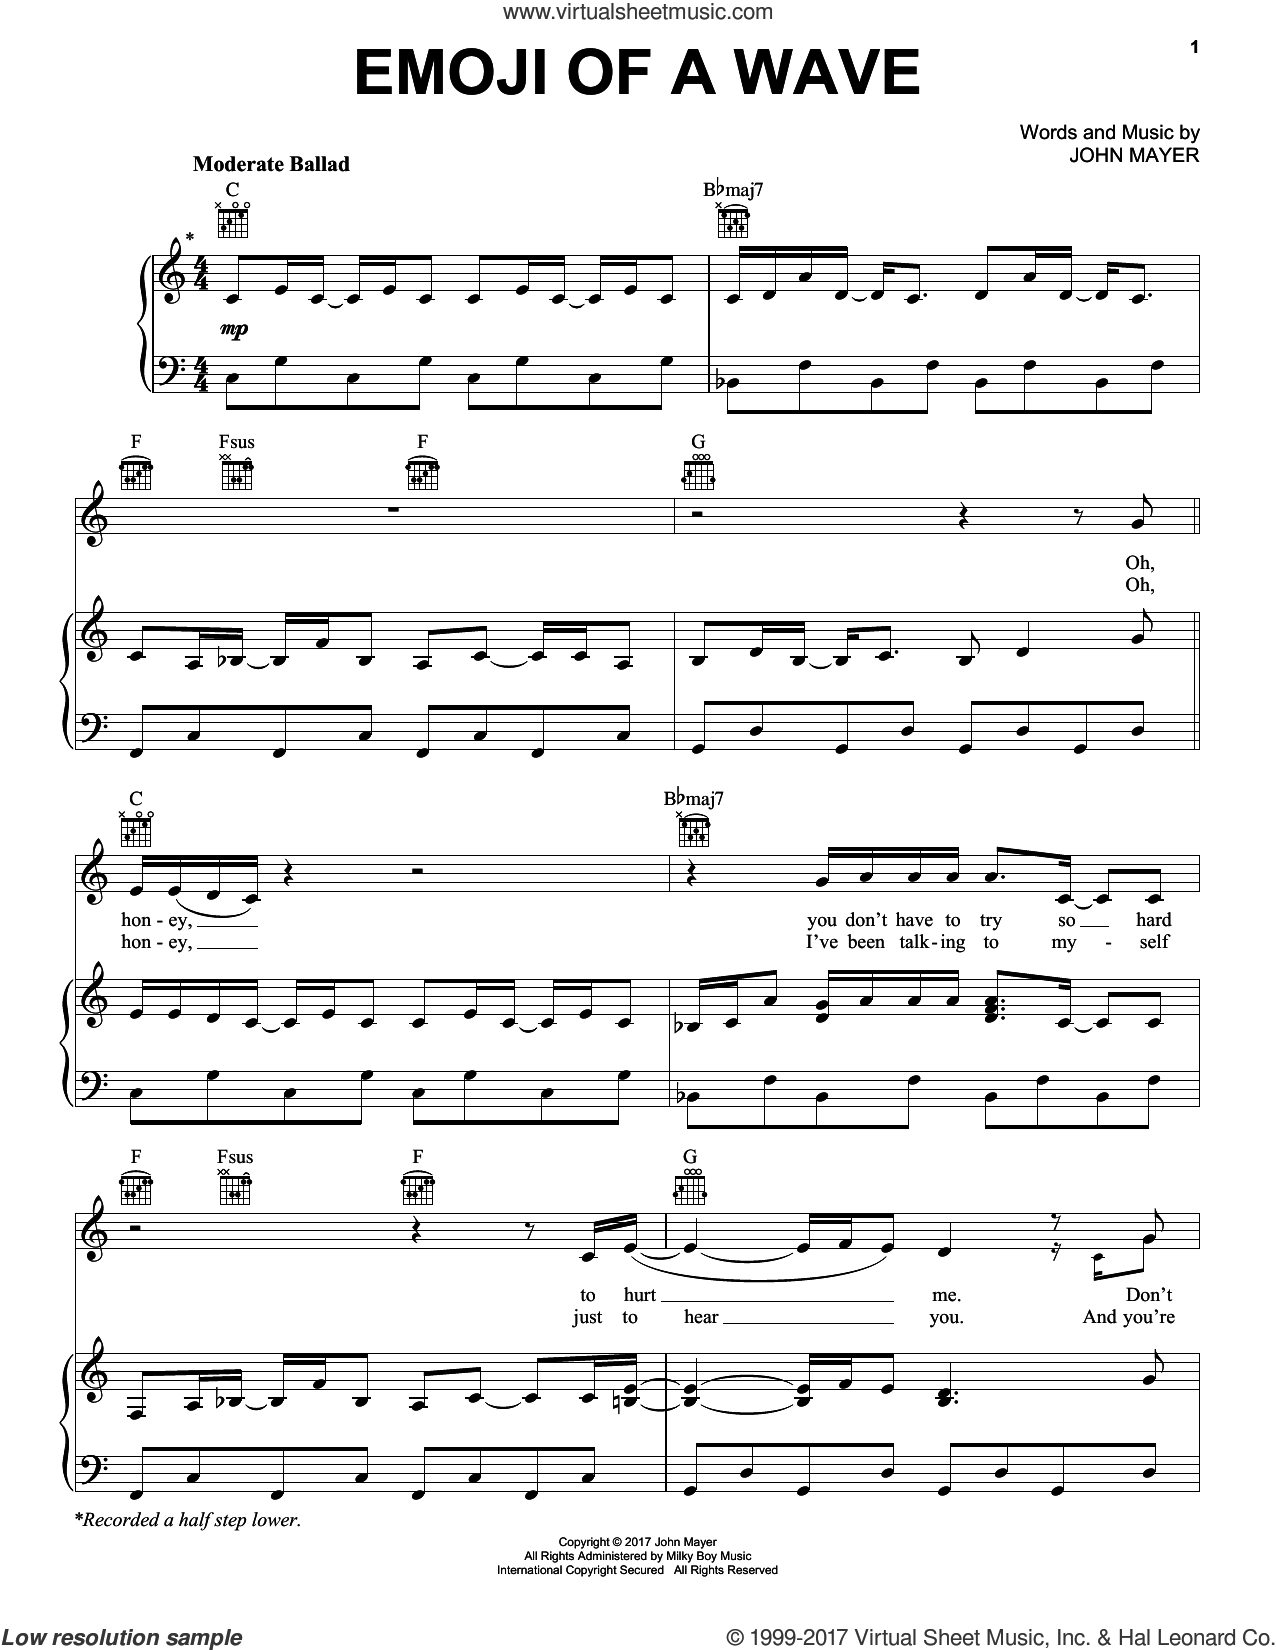 Emoji Of A Wave sheet music for voice, piano or guitar by John Mayer, intermediate skill level